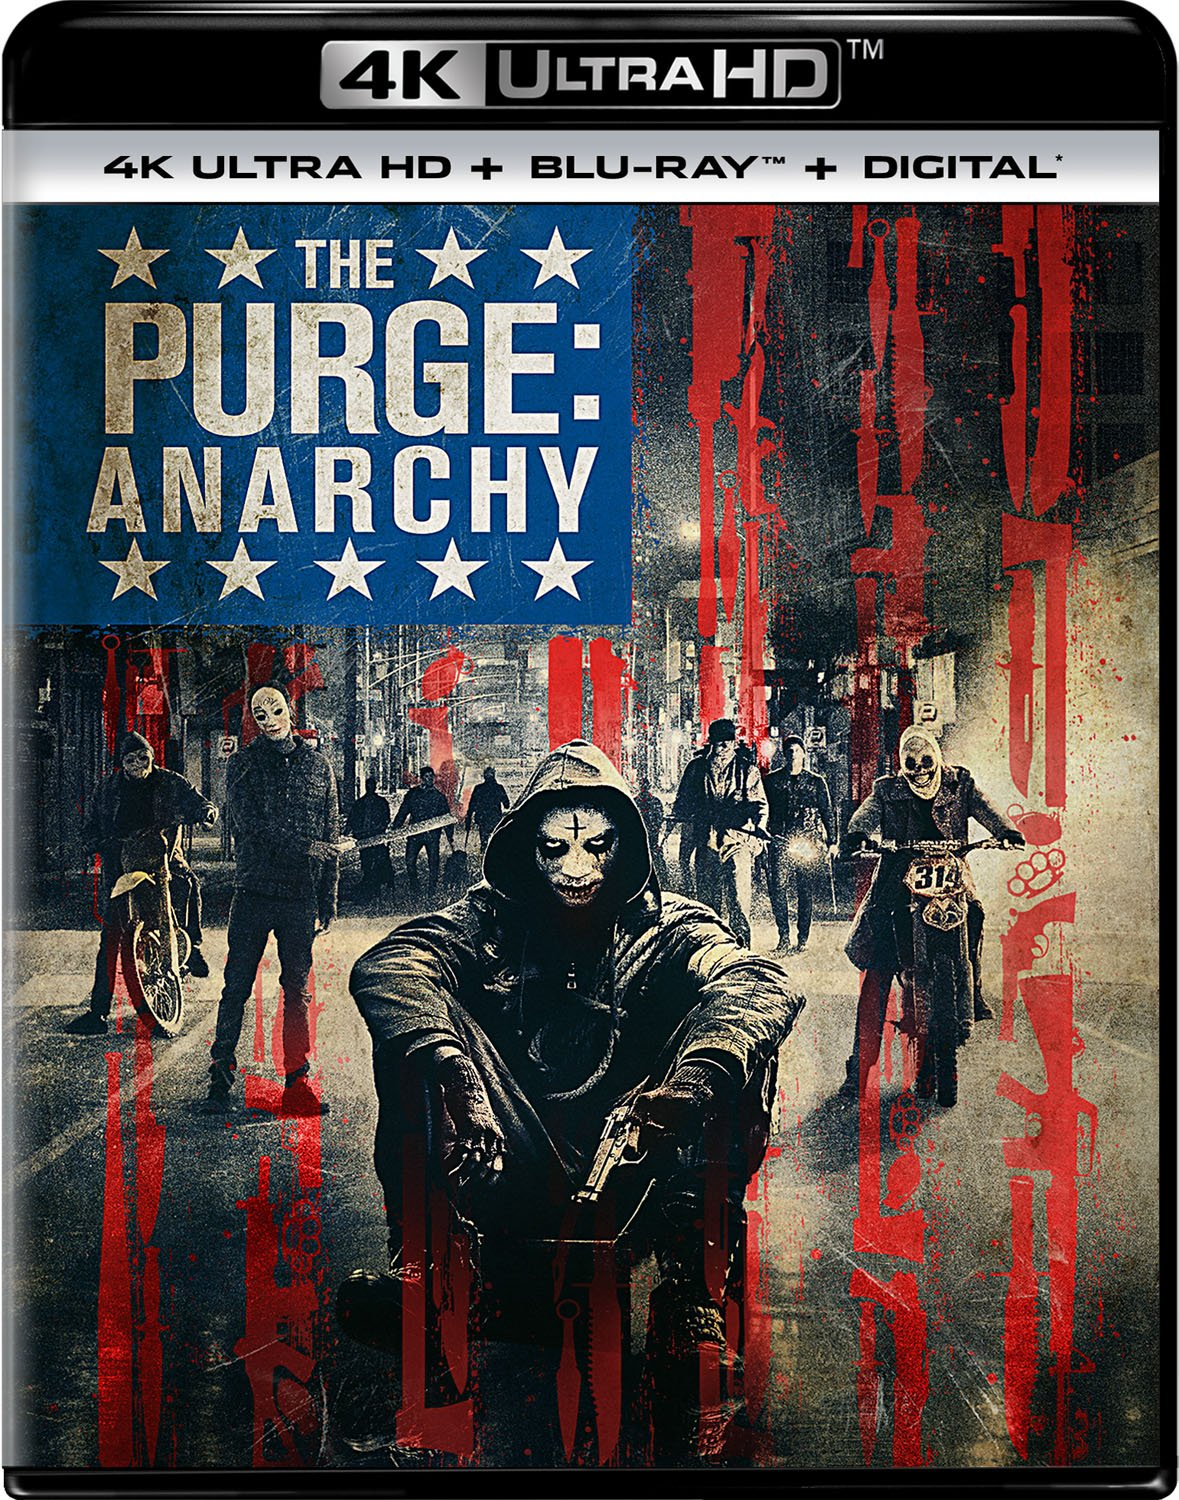 4K Blu-ray : The Purge: Anarchy (With Blu-Ray, 4K Mastering, 2 Pack, Digital Copy, 2PC)